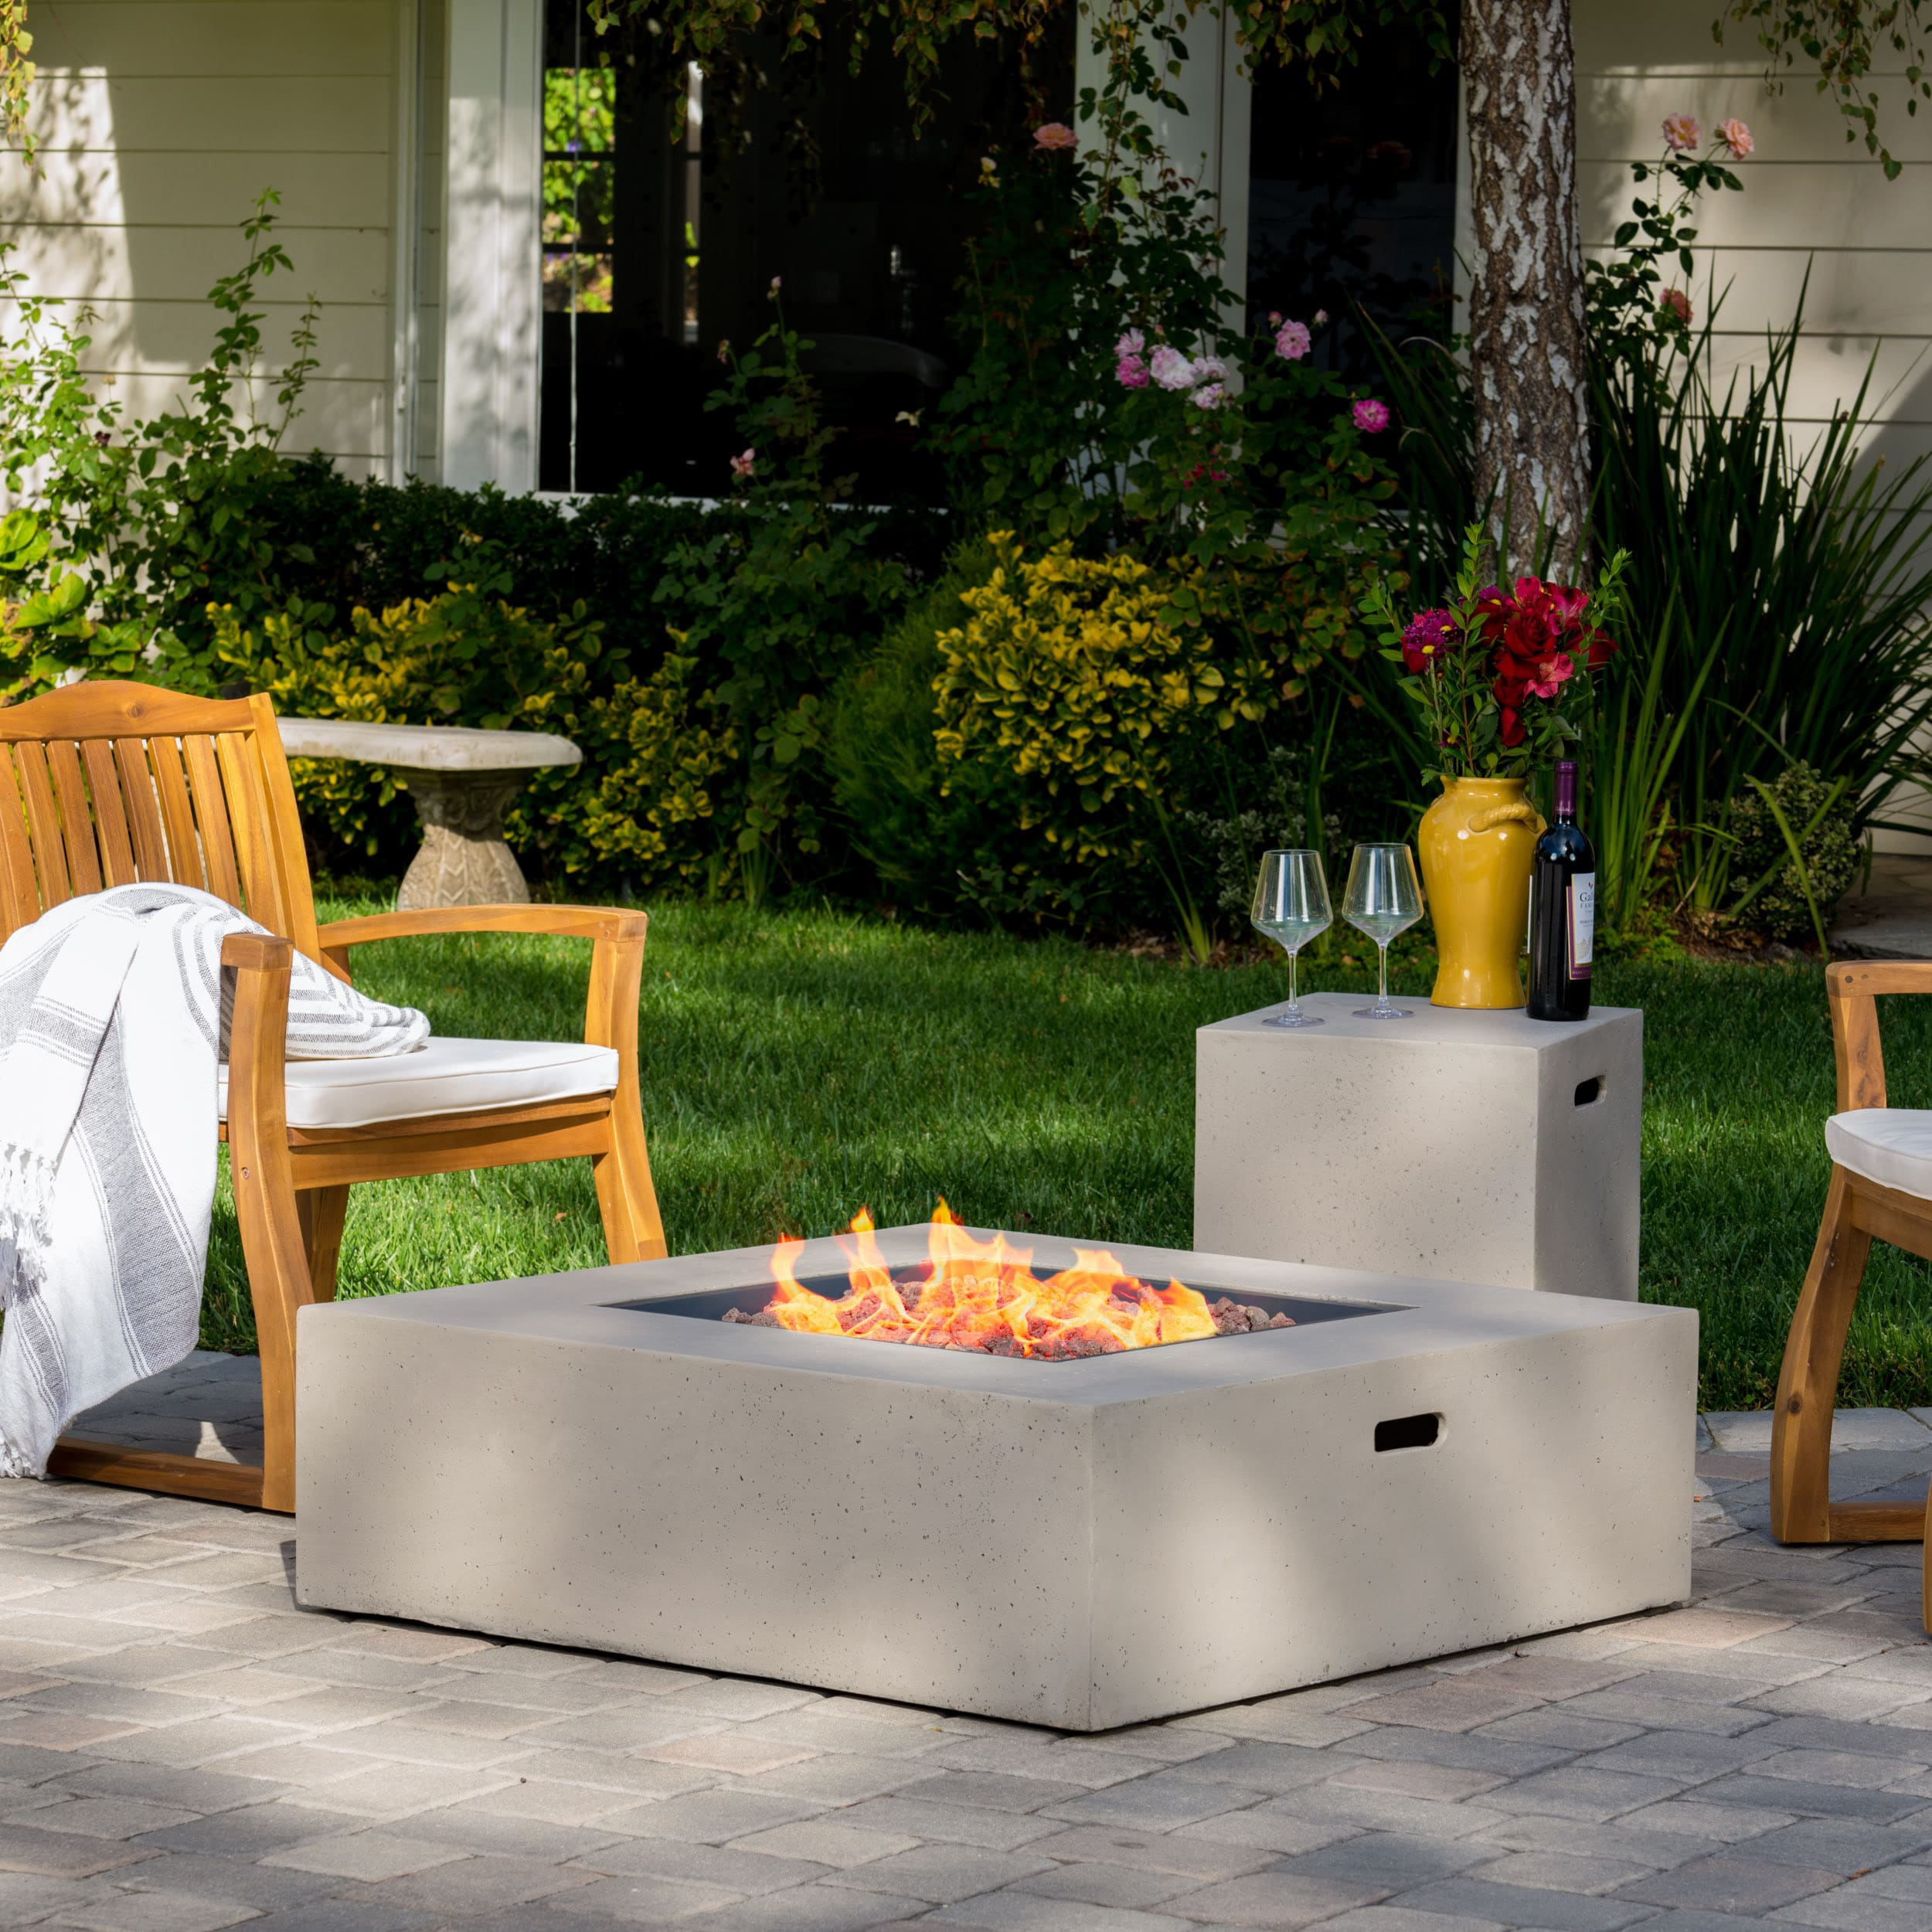 Picture of: Santos Outdoor 40 Inch Square Propane Fire Pit Table W Tank Holder By Christopher Knight Home On Sale Overstock 13181732